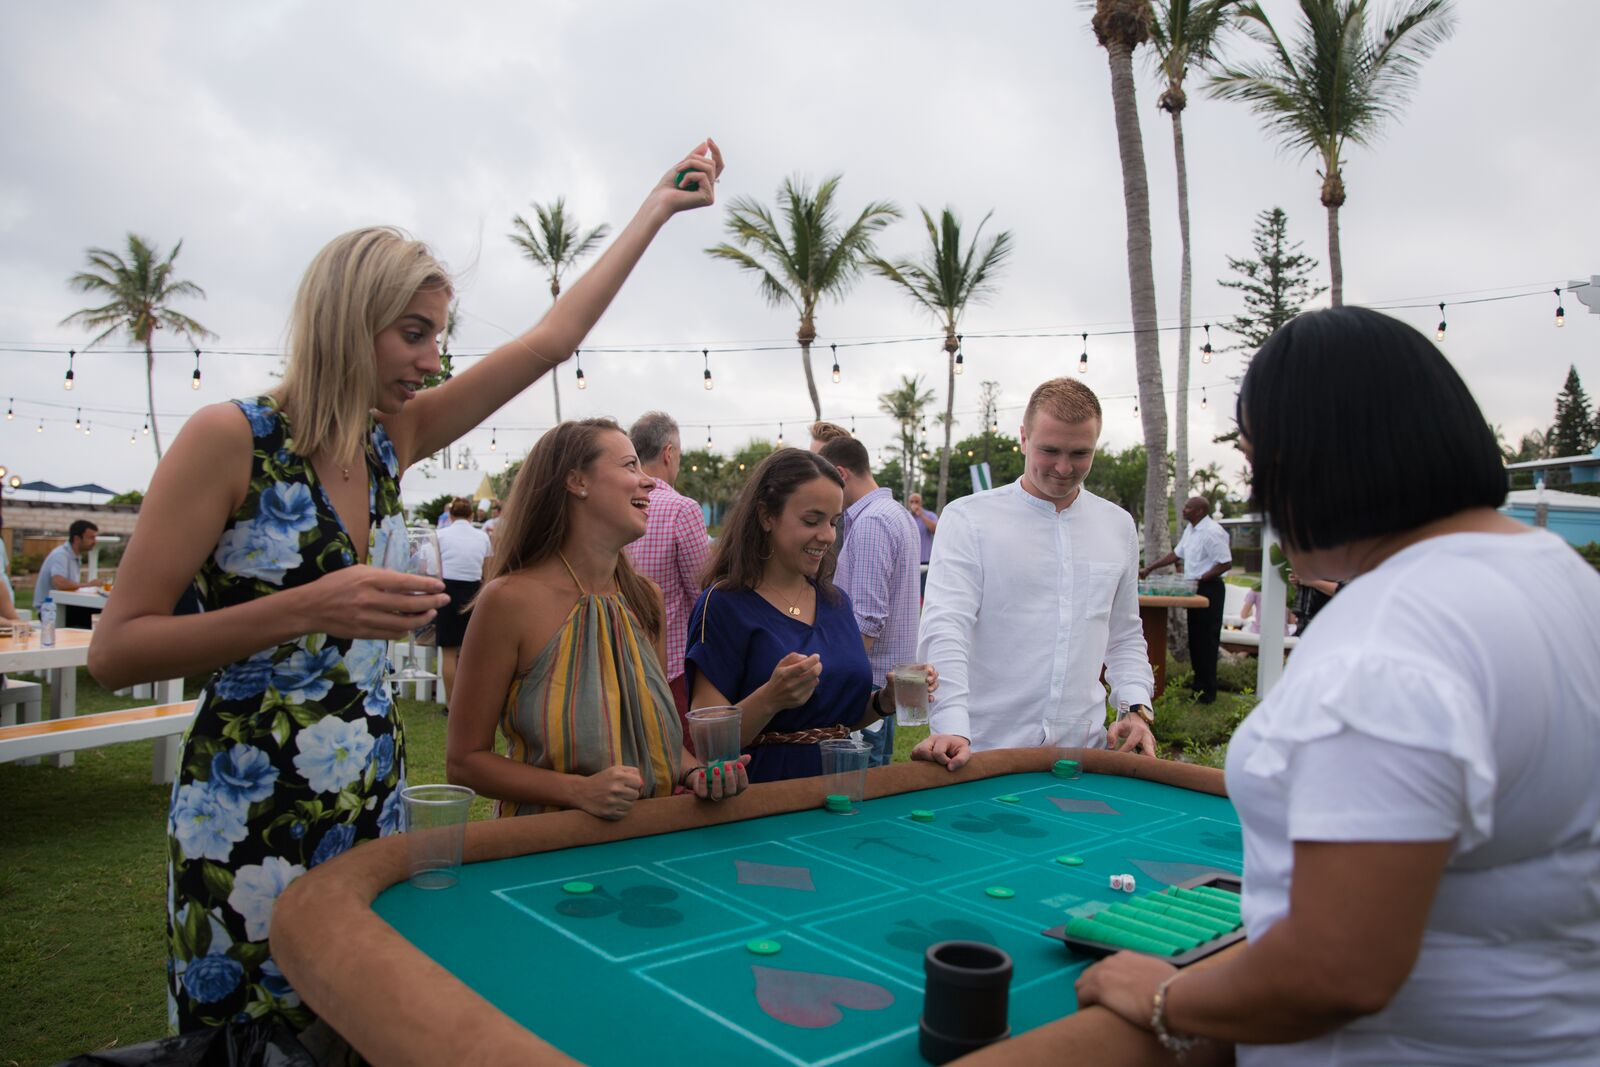 A taste of Bermuda! - Crown & Anchor gambling and Cup Match – we recreated the once a year colourful rivalry between the East and West Ends of Bermuda with guests experiencing local culture.